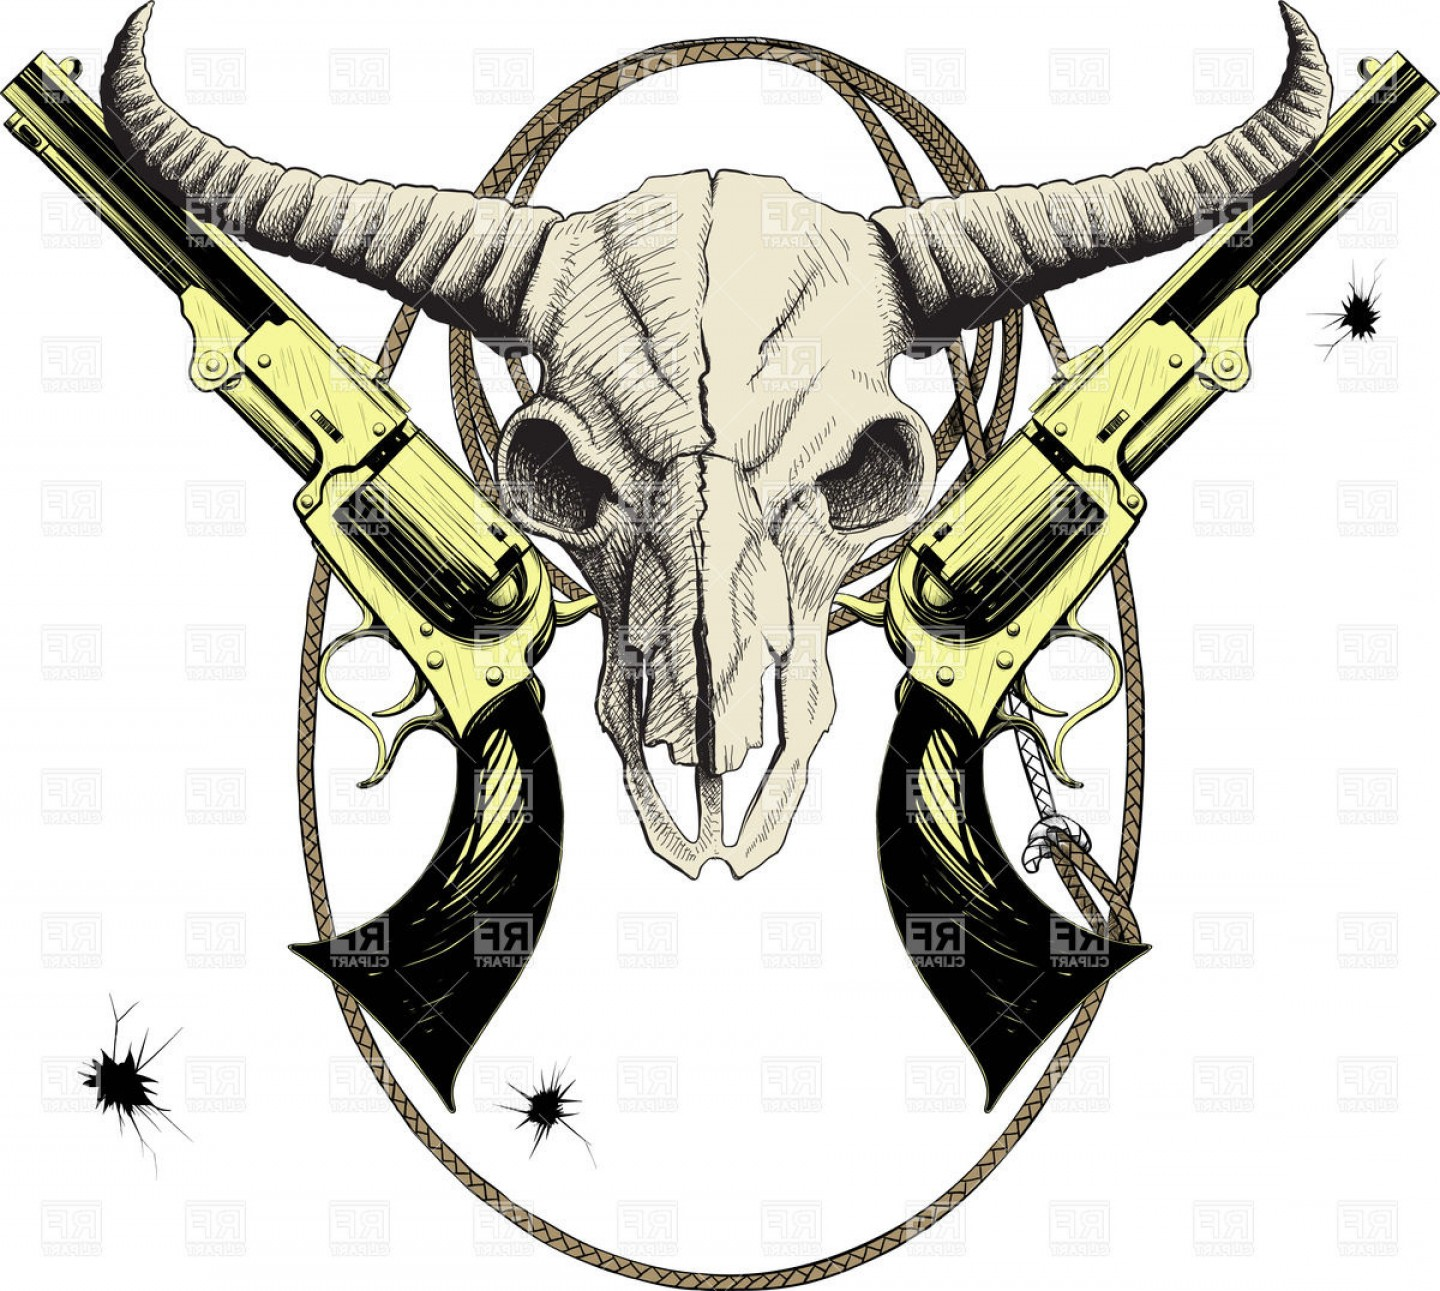 Western skull clipart svg library download Mascot Of The Wild West With Skull Bison And Revolvers In ... svg library download